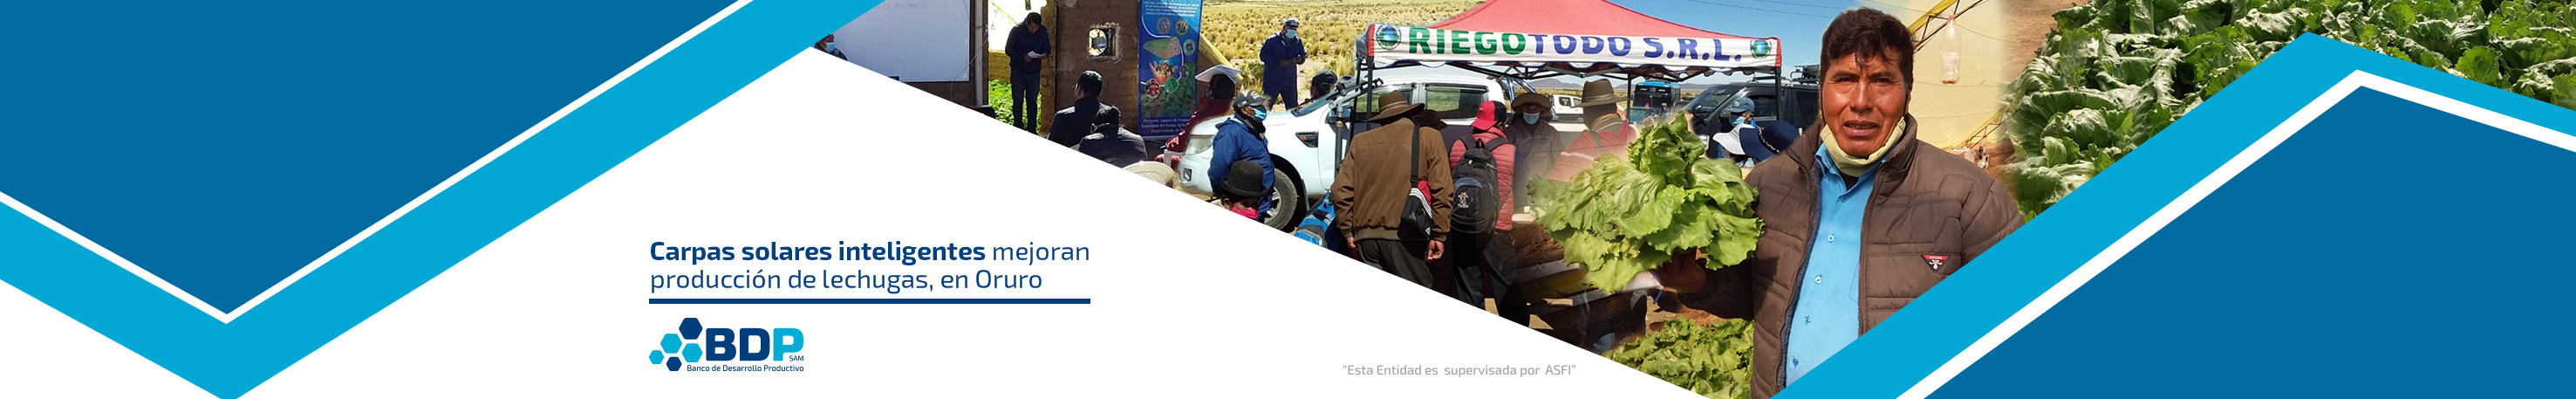 Banner Productores lechuga